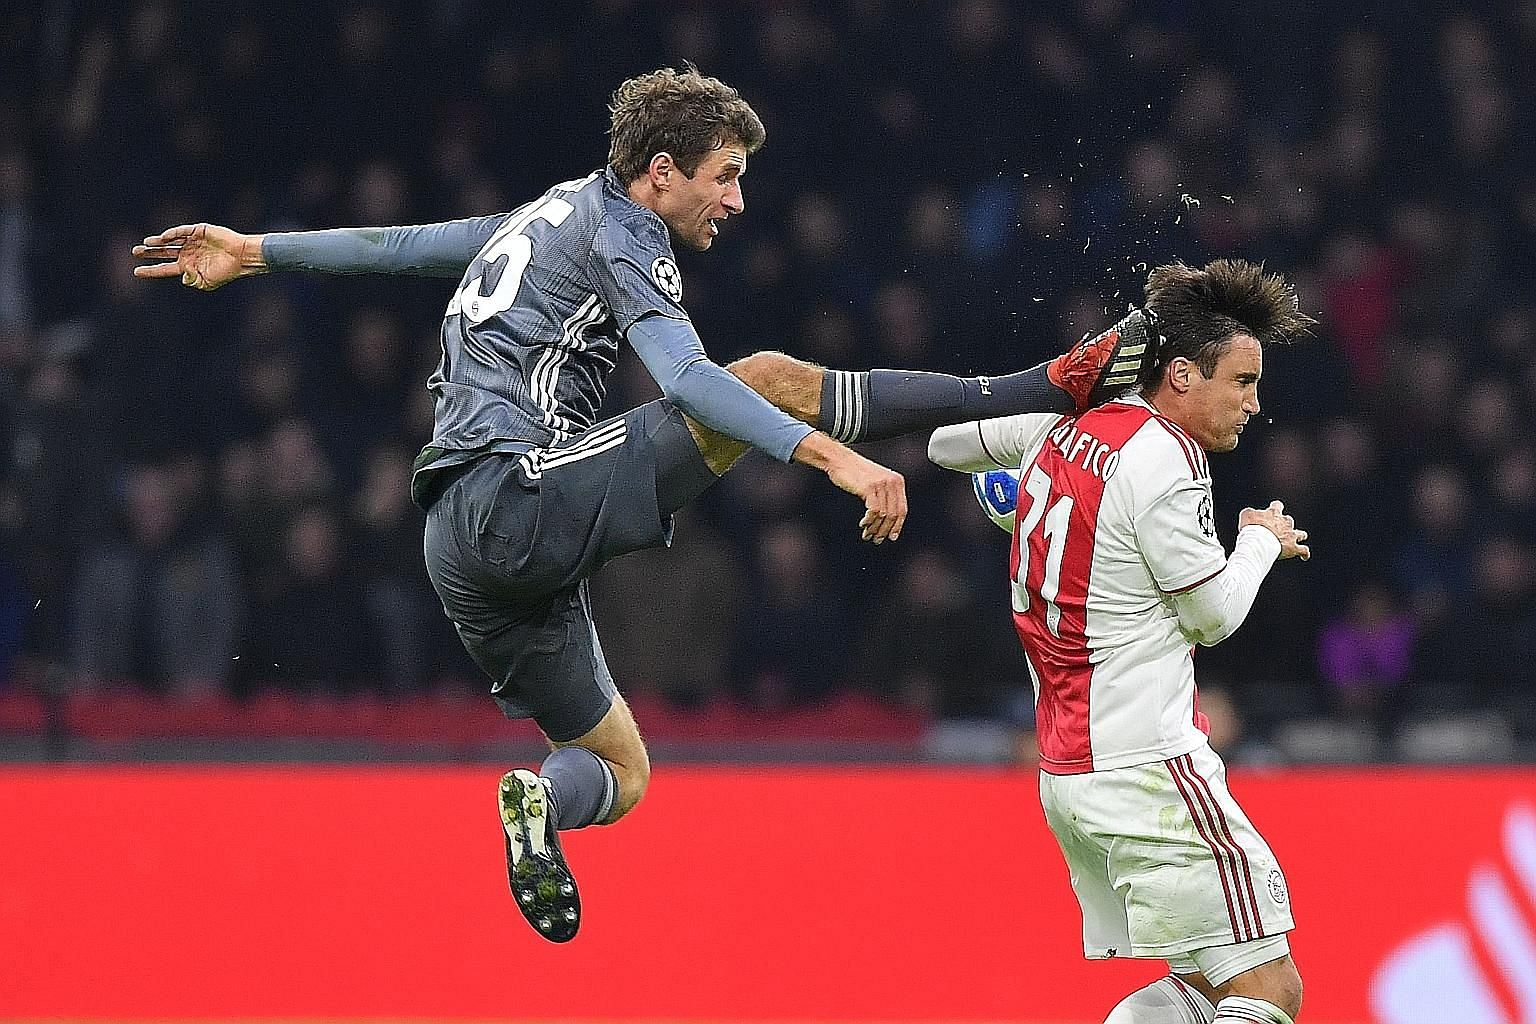 Bayern Munich's Thomas Muller saw red after missing the ball and landing a head-high kick on Ajax left-back Nicolas Tagliafico in their Champions League game.